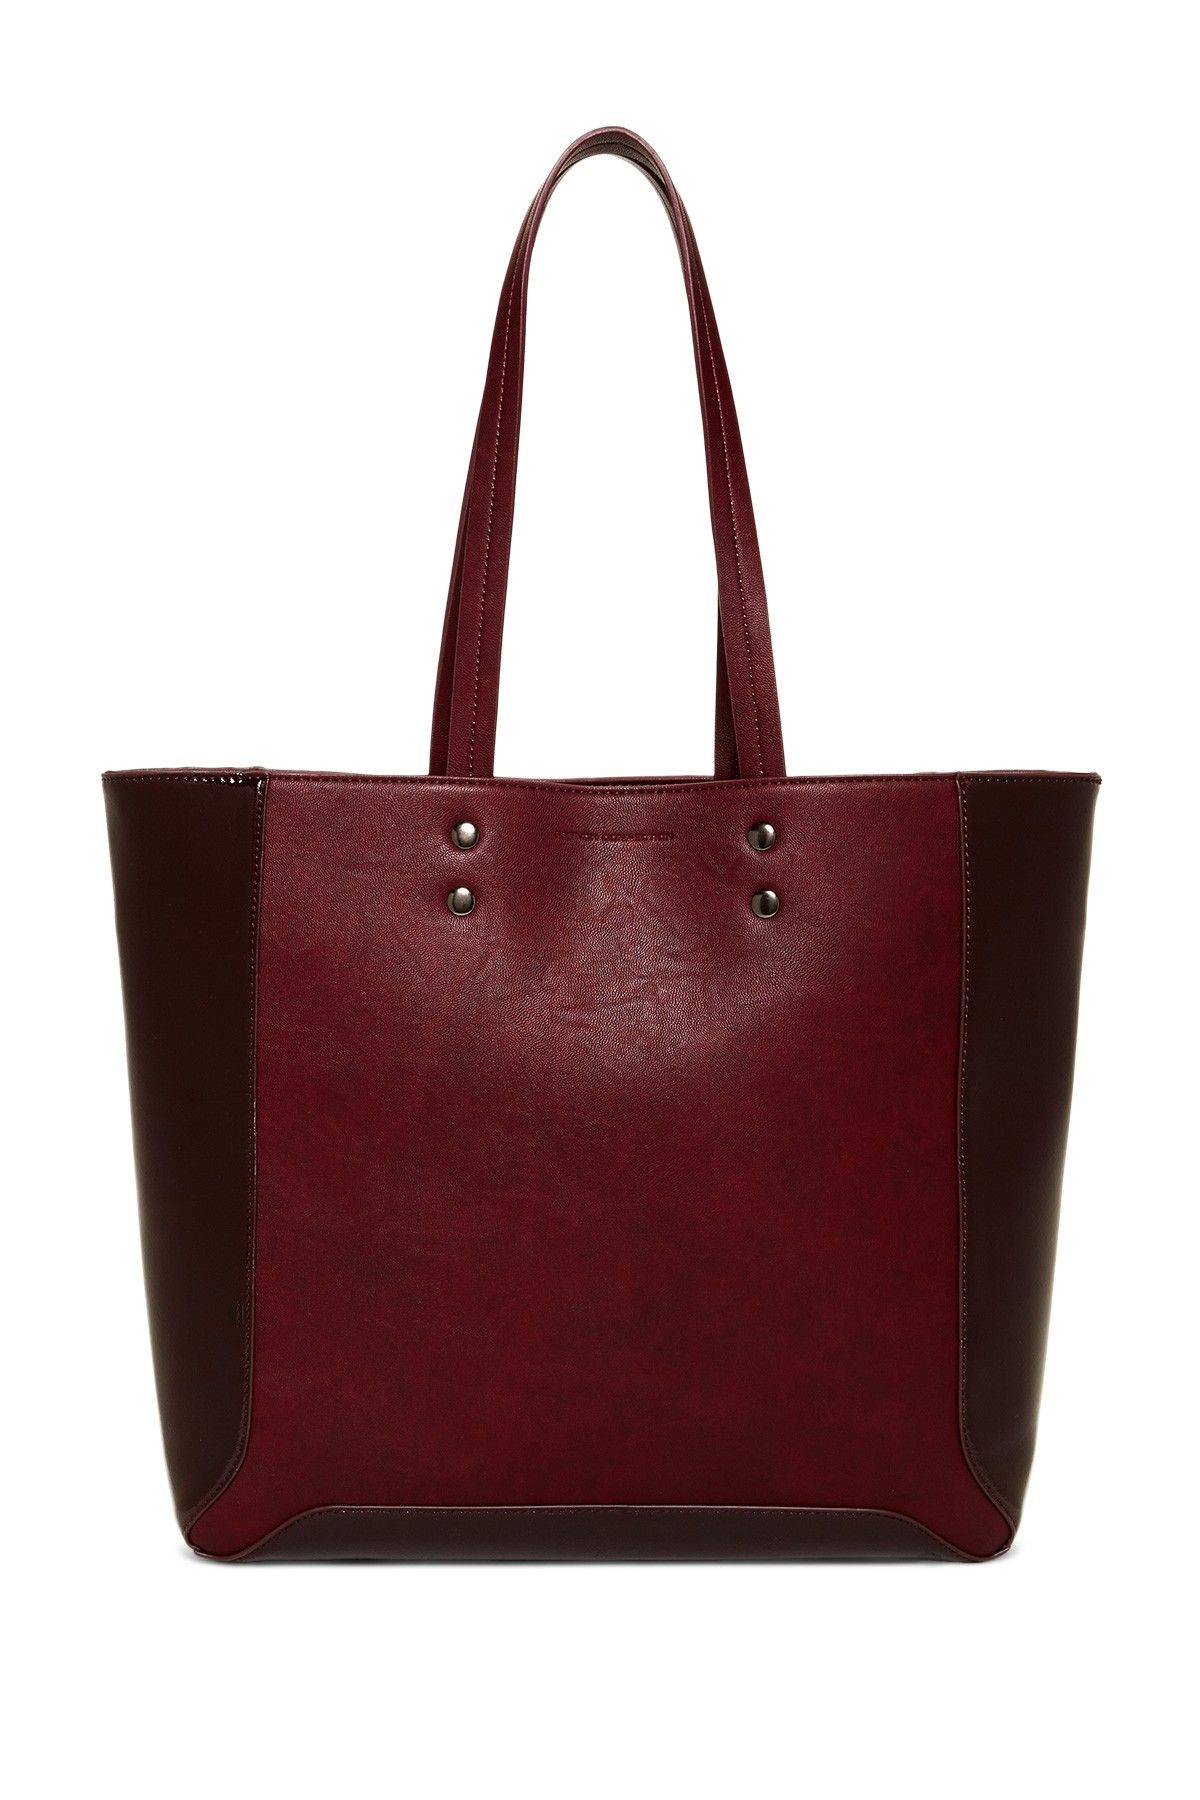 Marsala Tote | Color of the Year: Greenery